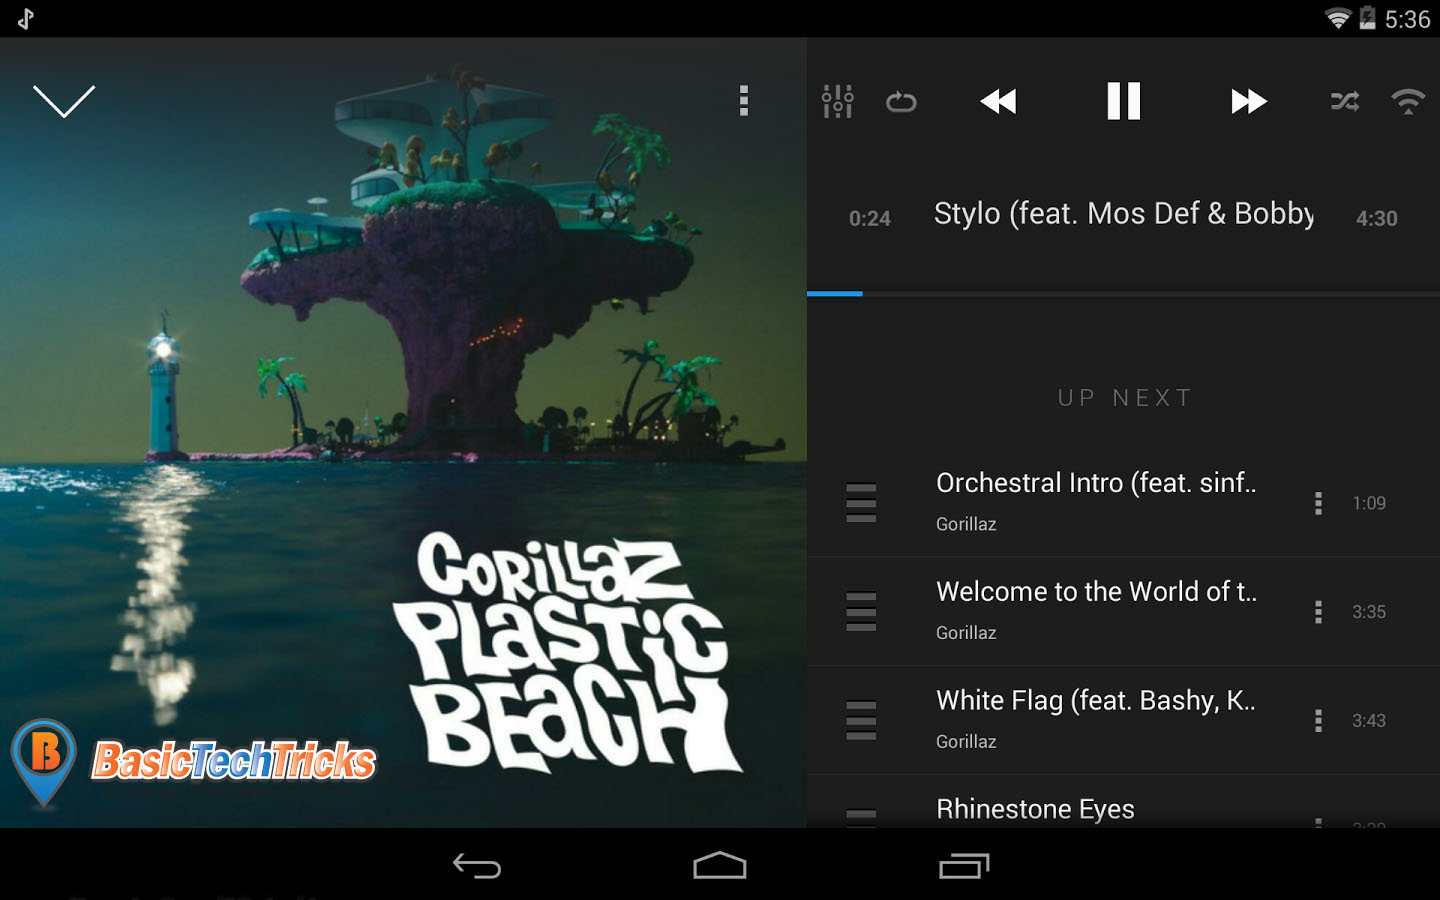 doubleTwist android best music player app